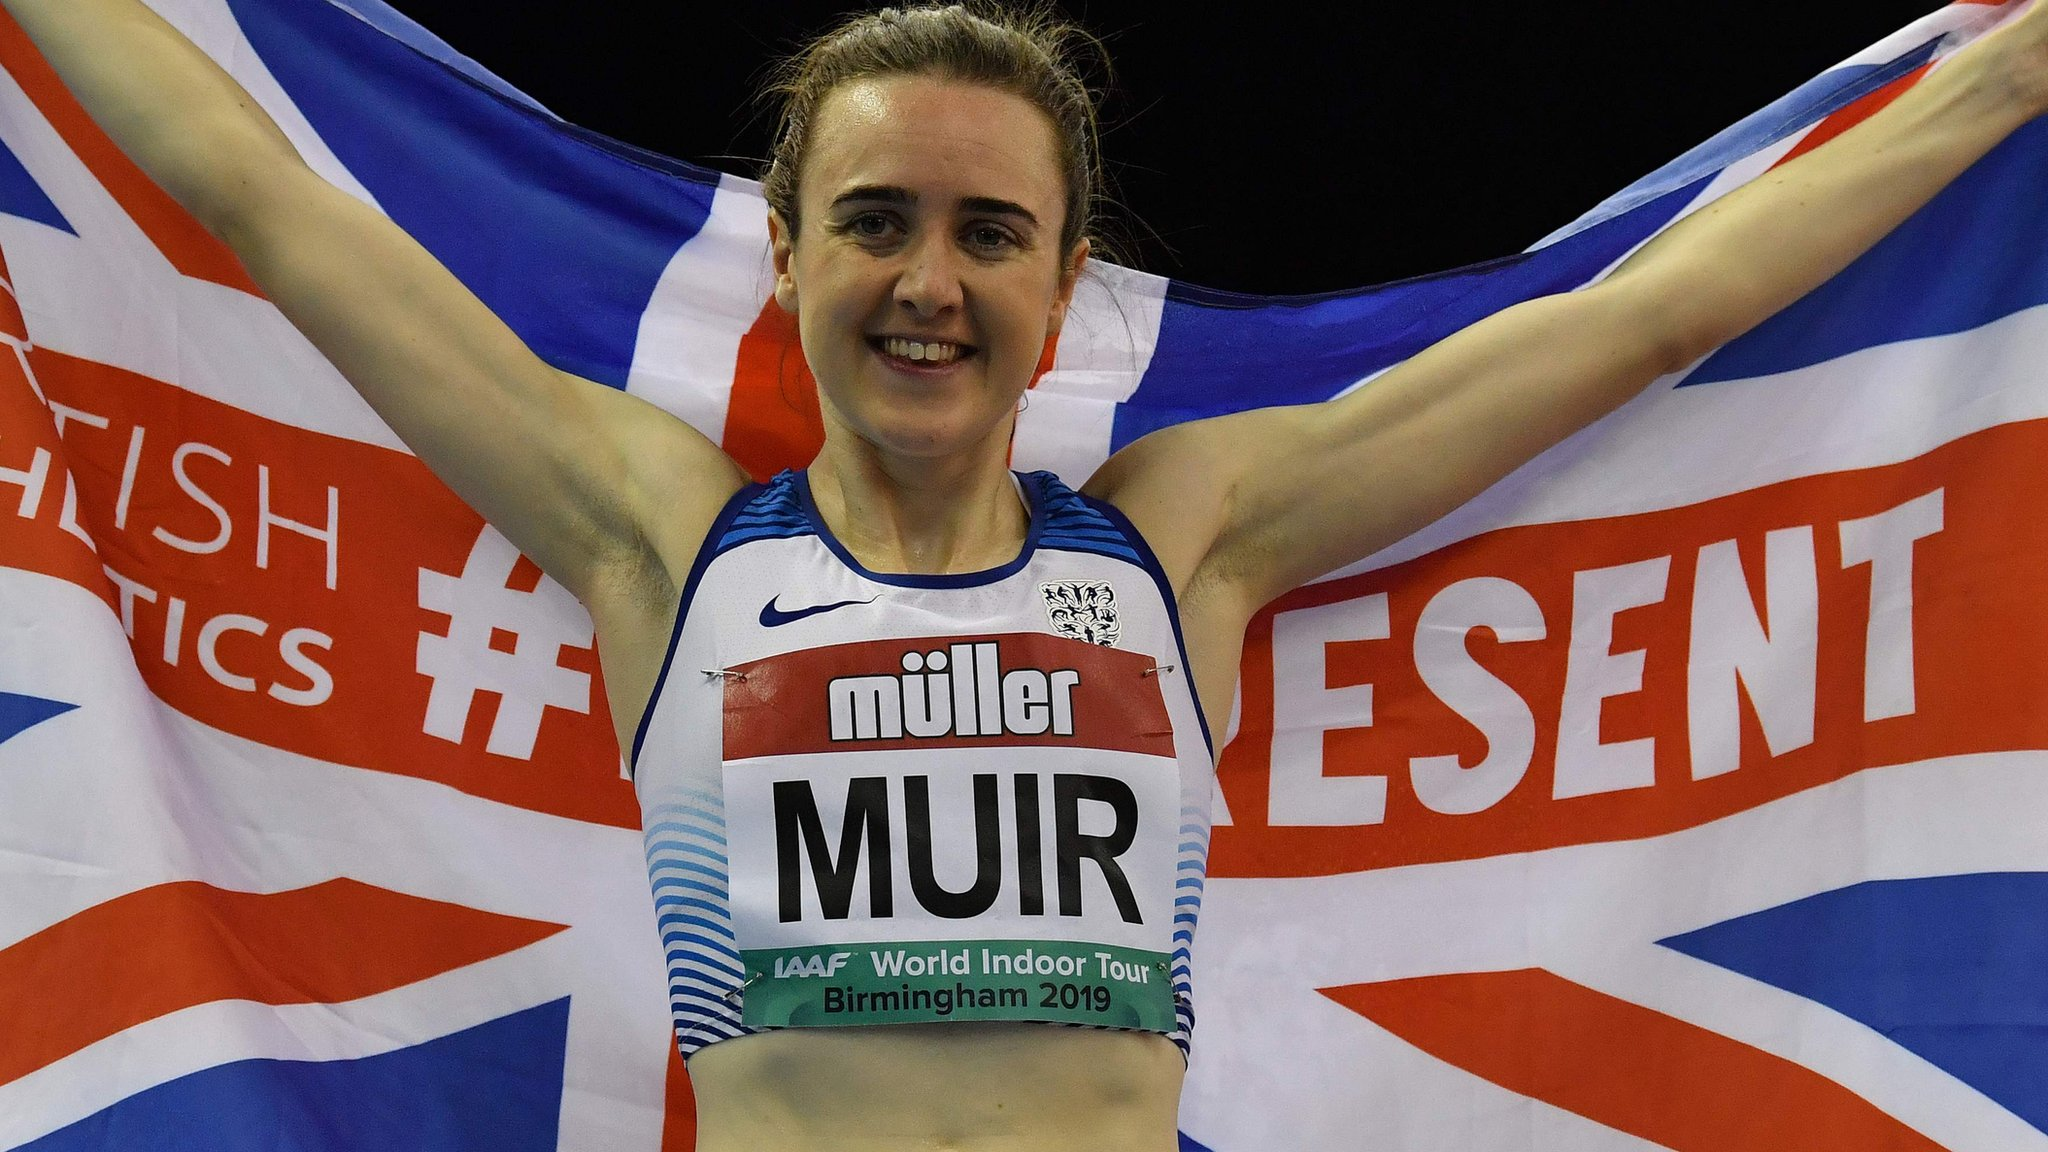 Laura Muir: Scot breaks 31-year-old mile record by more than five seconds